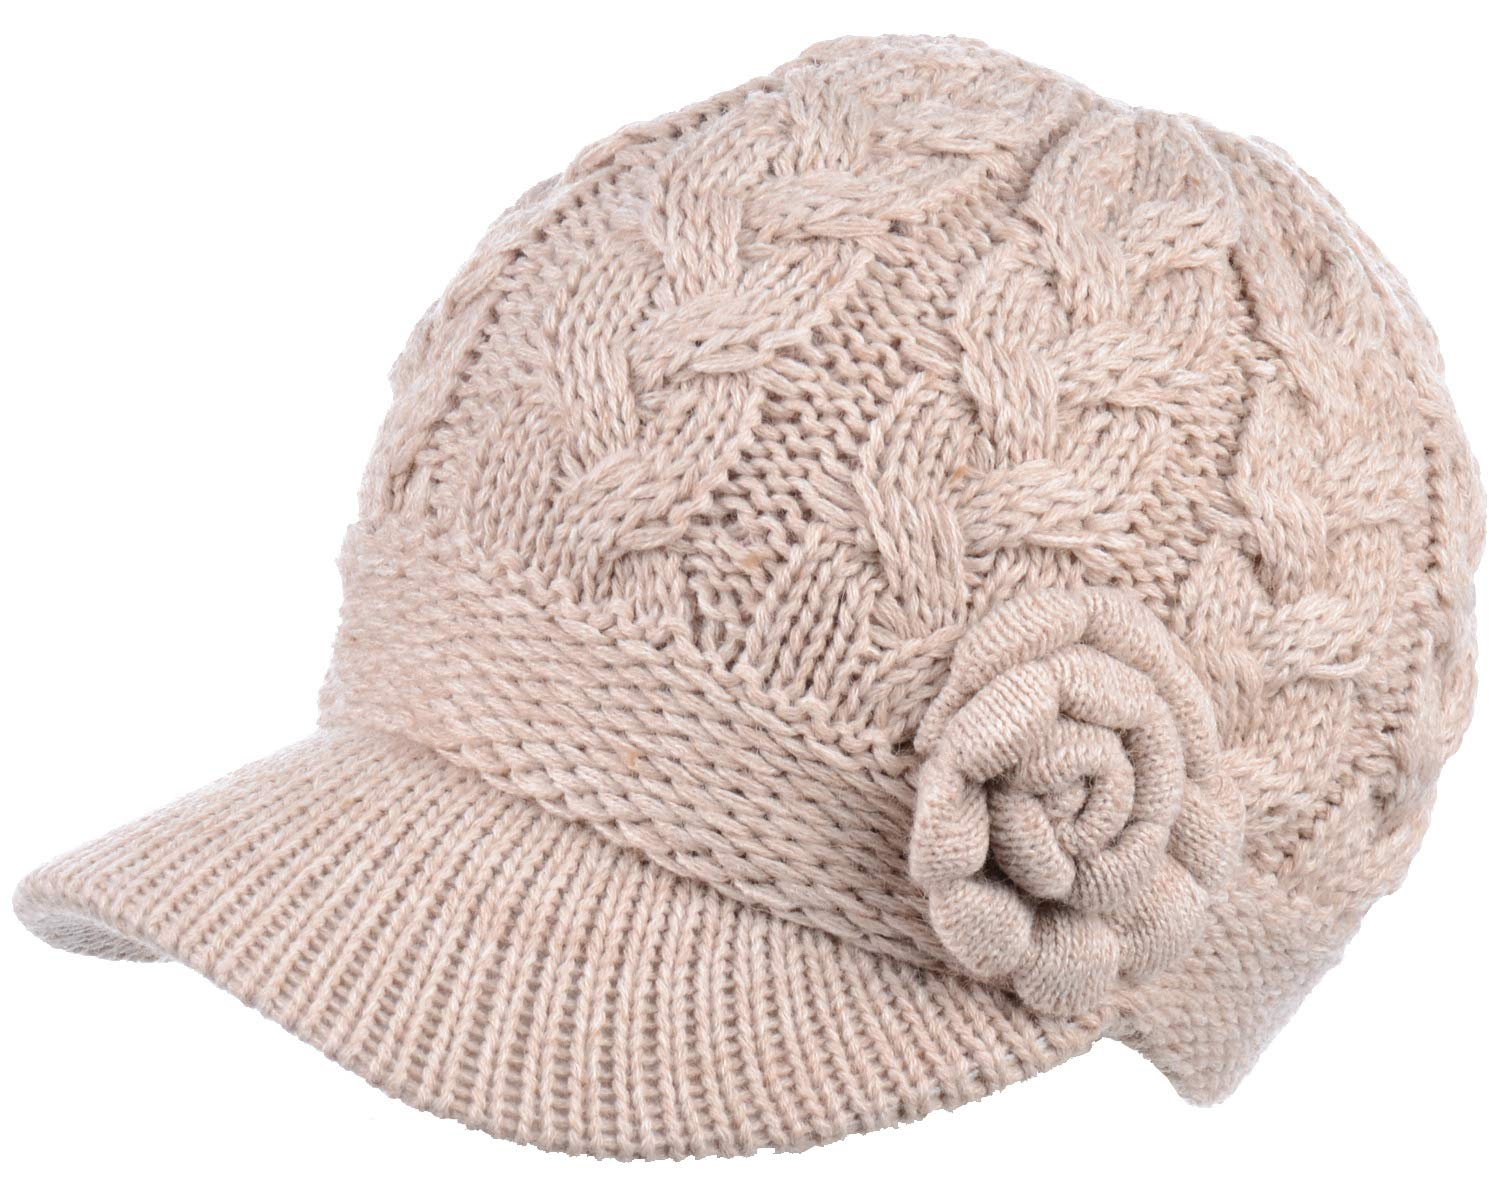 BYOS Womens Winter Chic Cable Knitted Newsboy Cabbie Cap Beret Beanie Hat with Visor, Warm Plush Fleece Lined, Many Styles (Cable w/Flower Nature) by Be Your Own Style